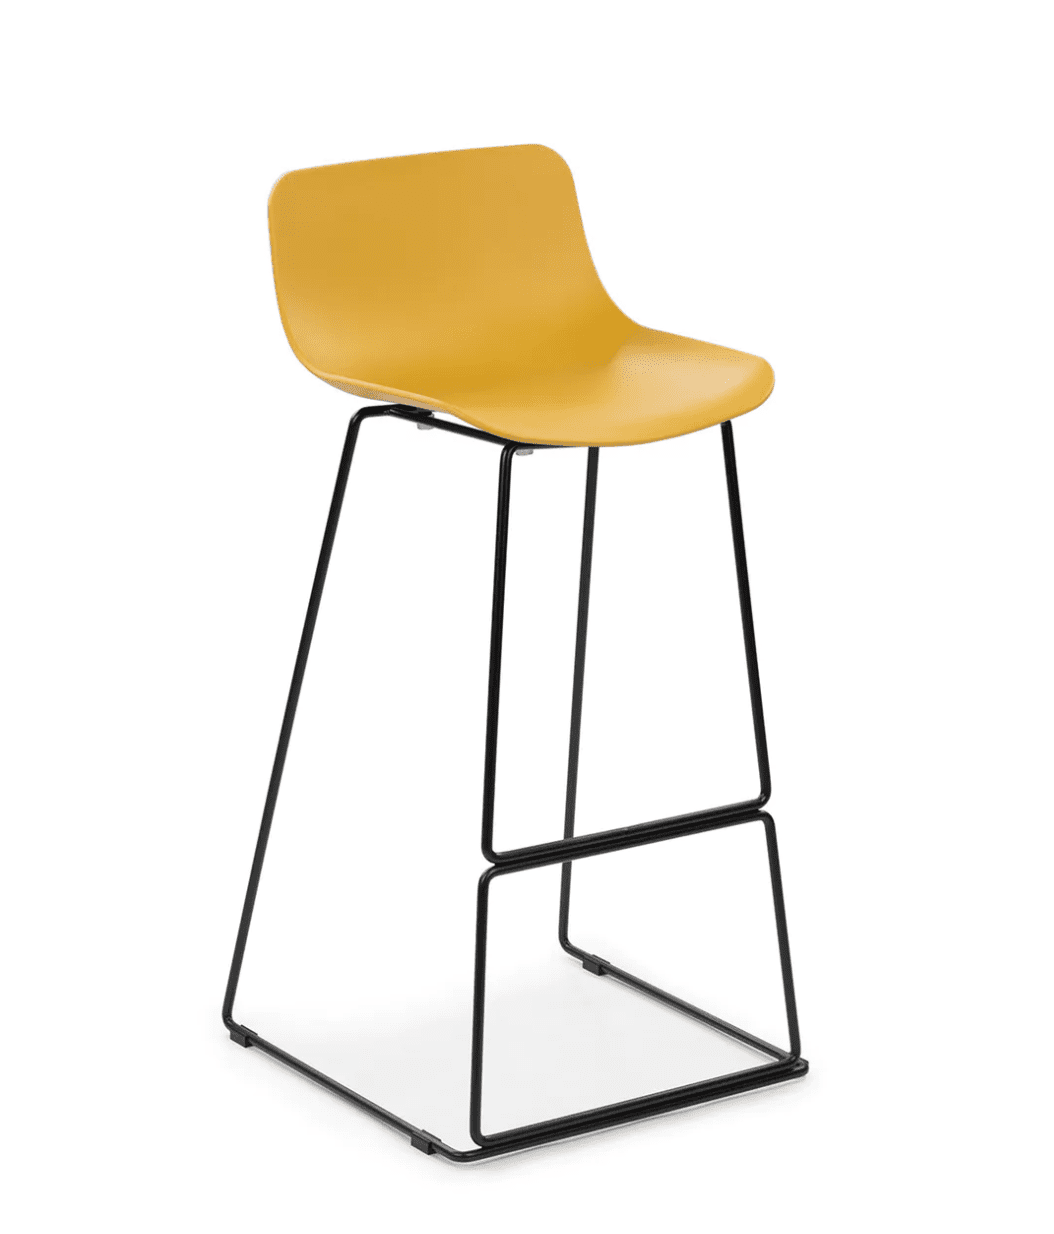 Anco Mustard Yellow Bar Stool by Article